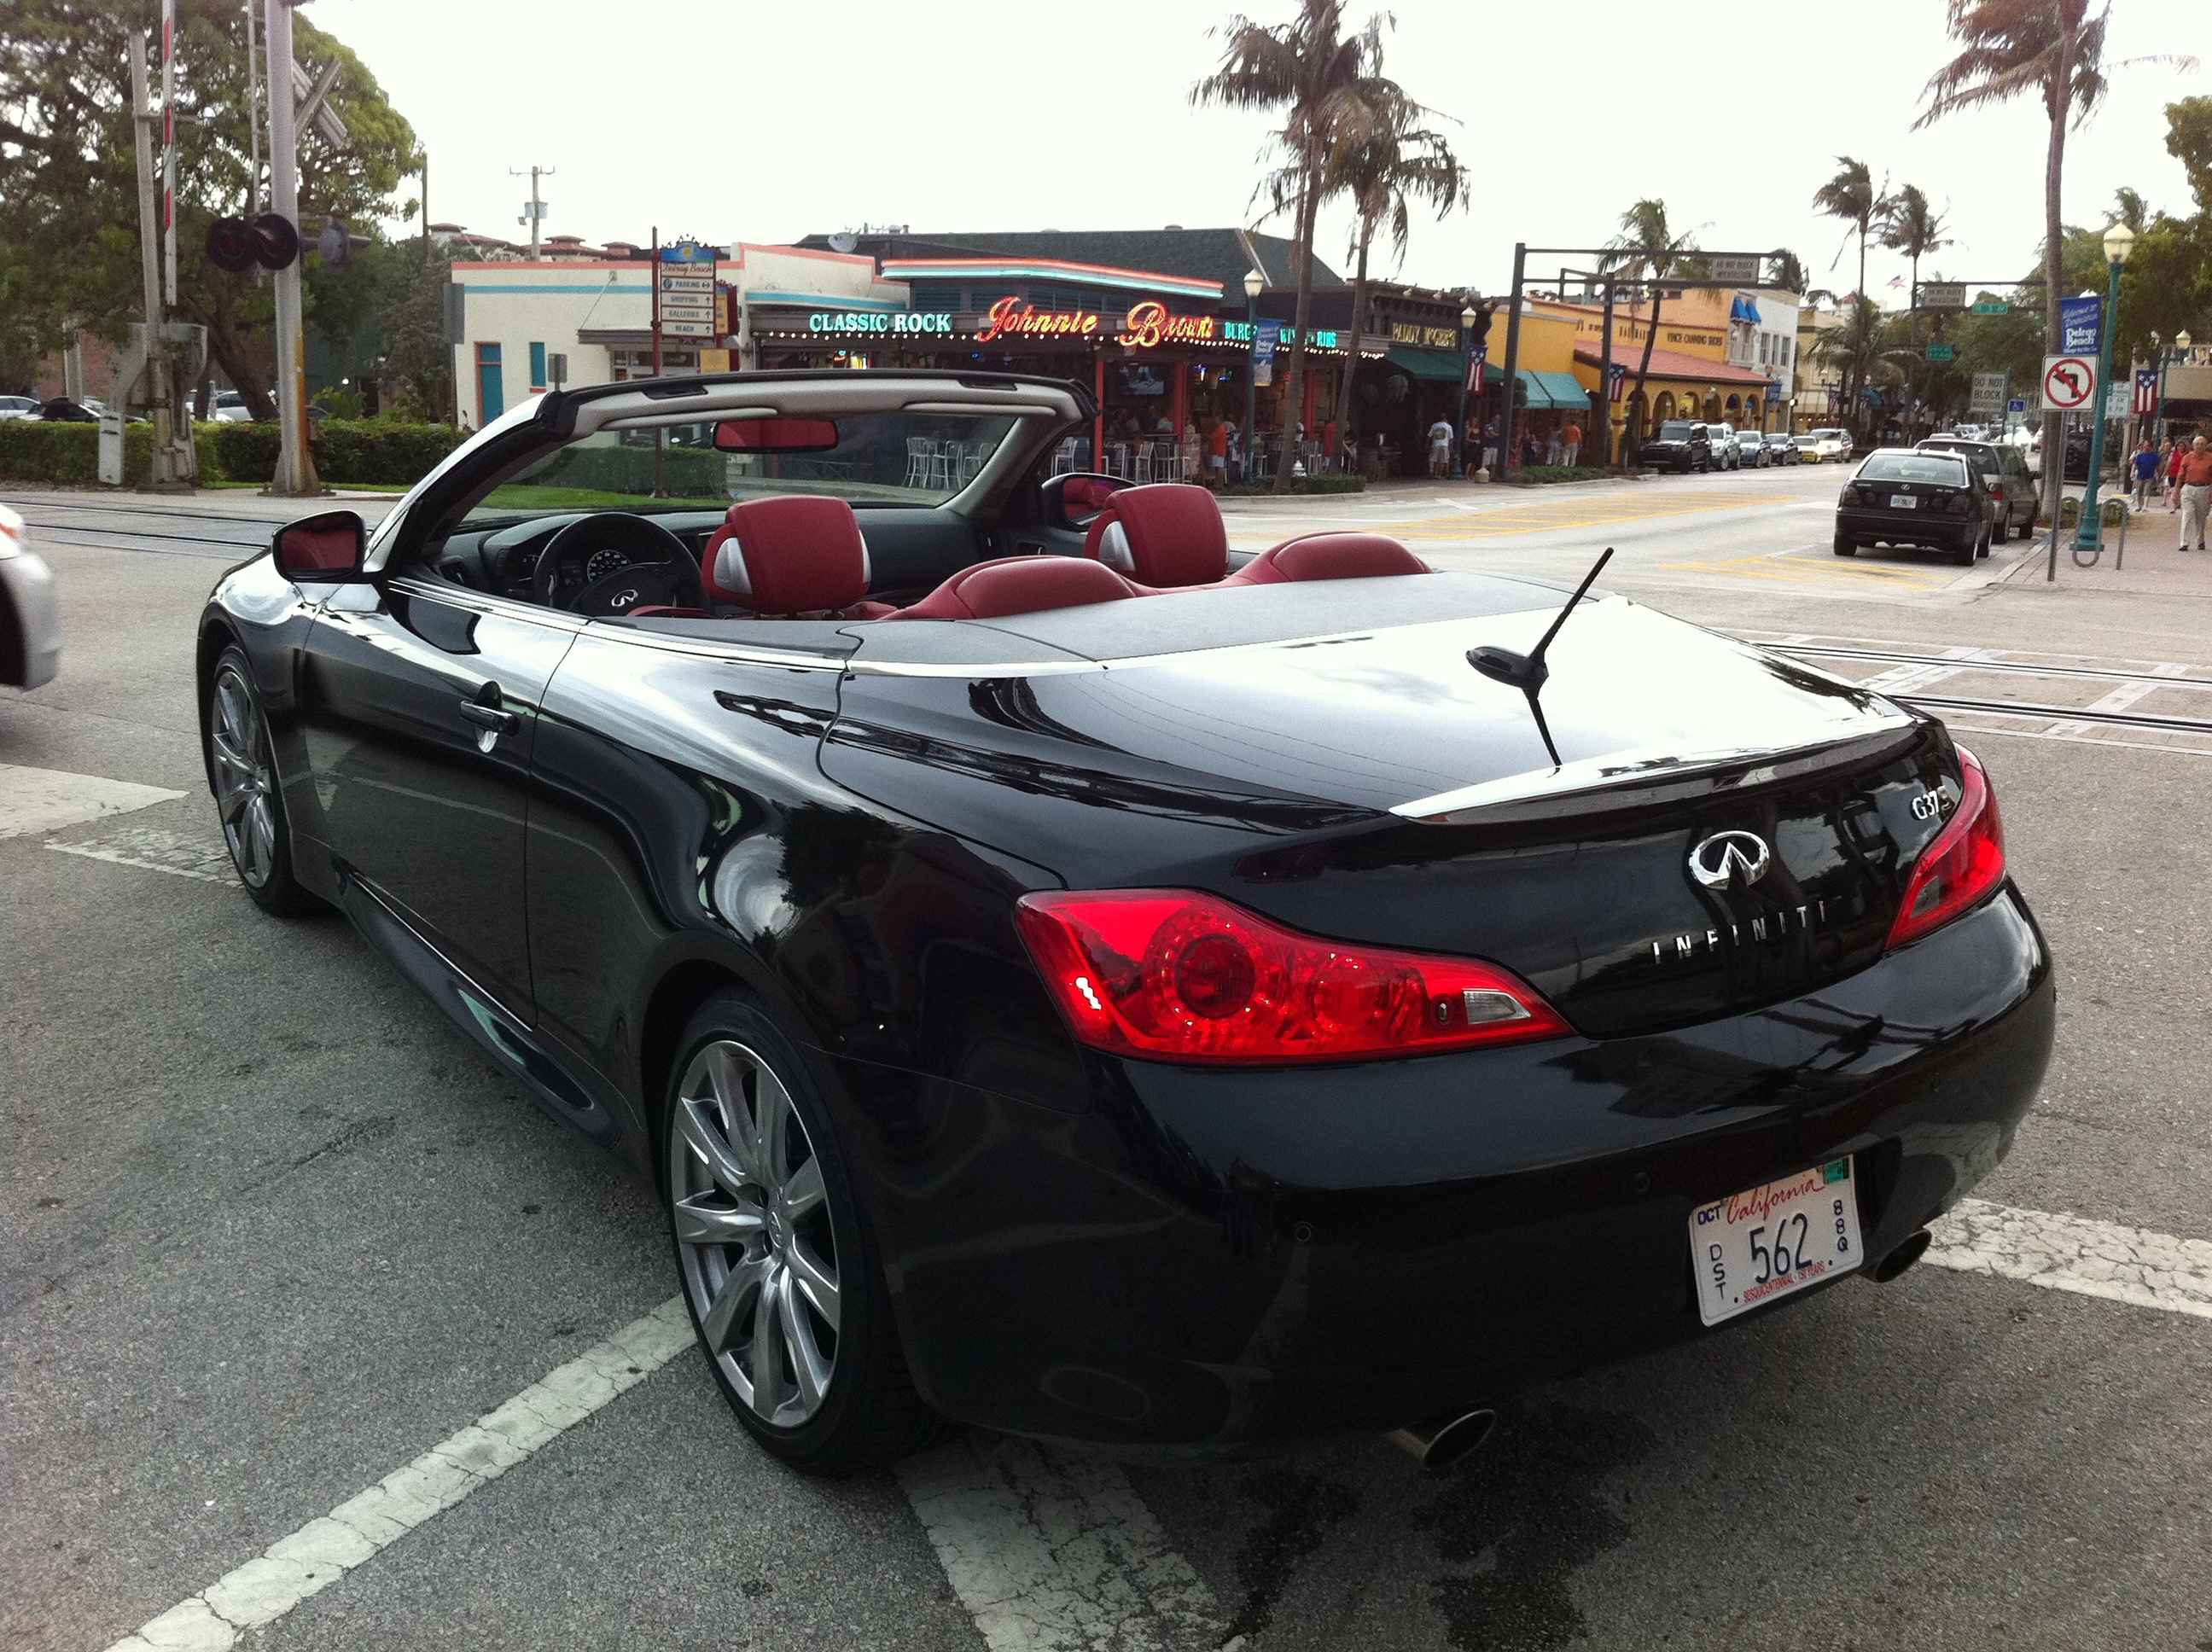 gallery infinity custom body kit by infiniti for convertible vossen and white carid rims photo